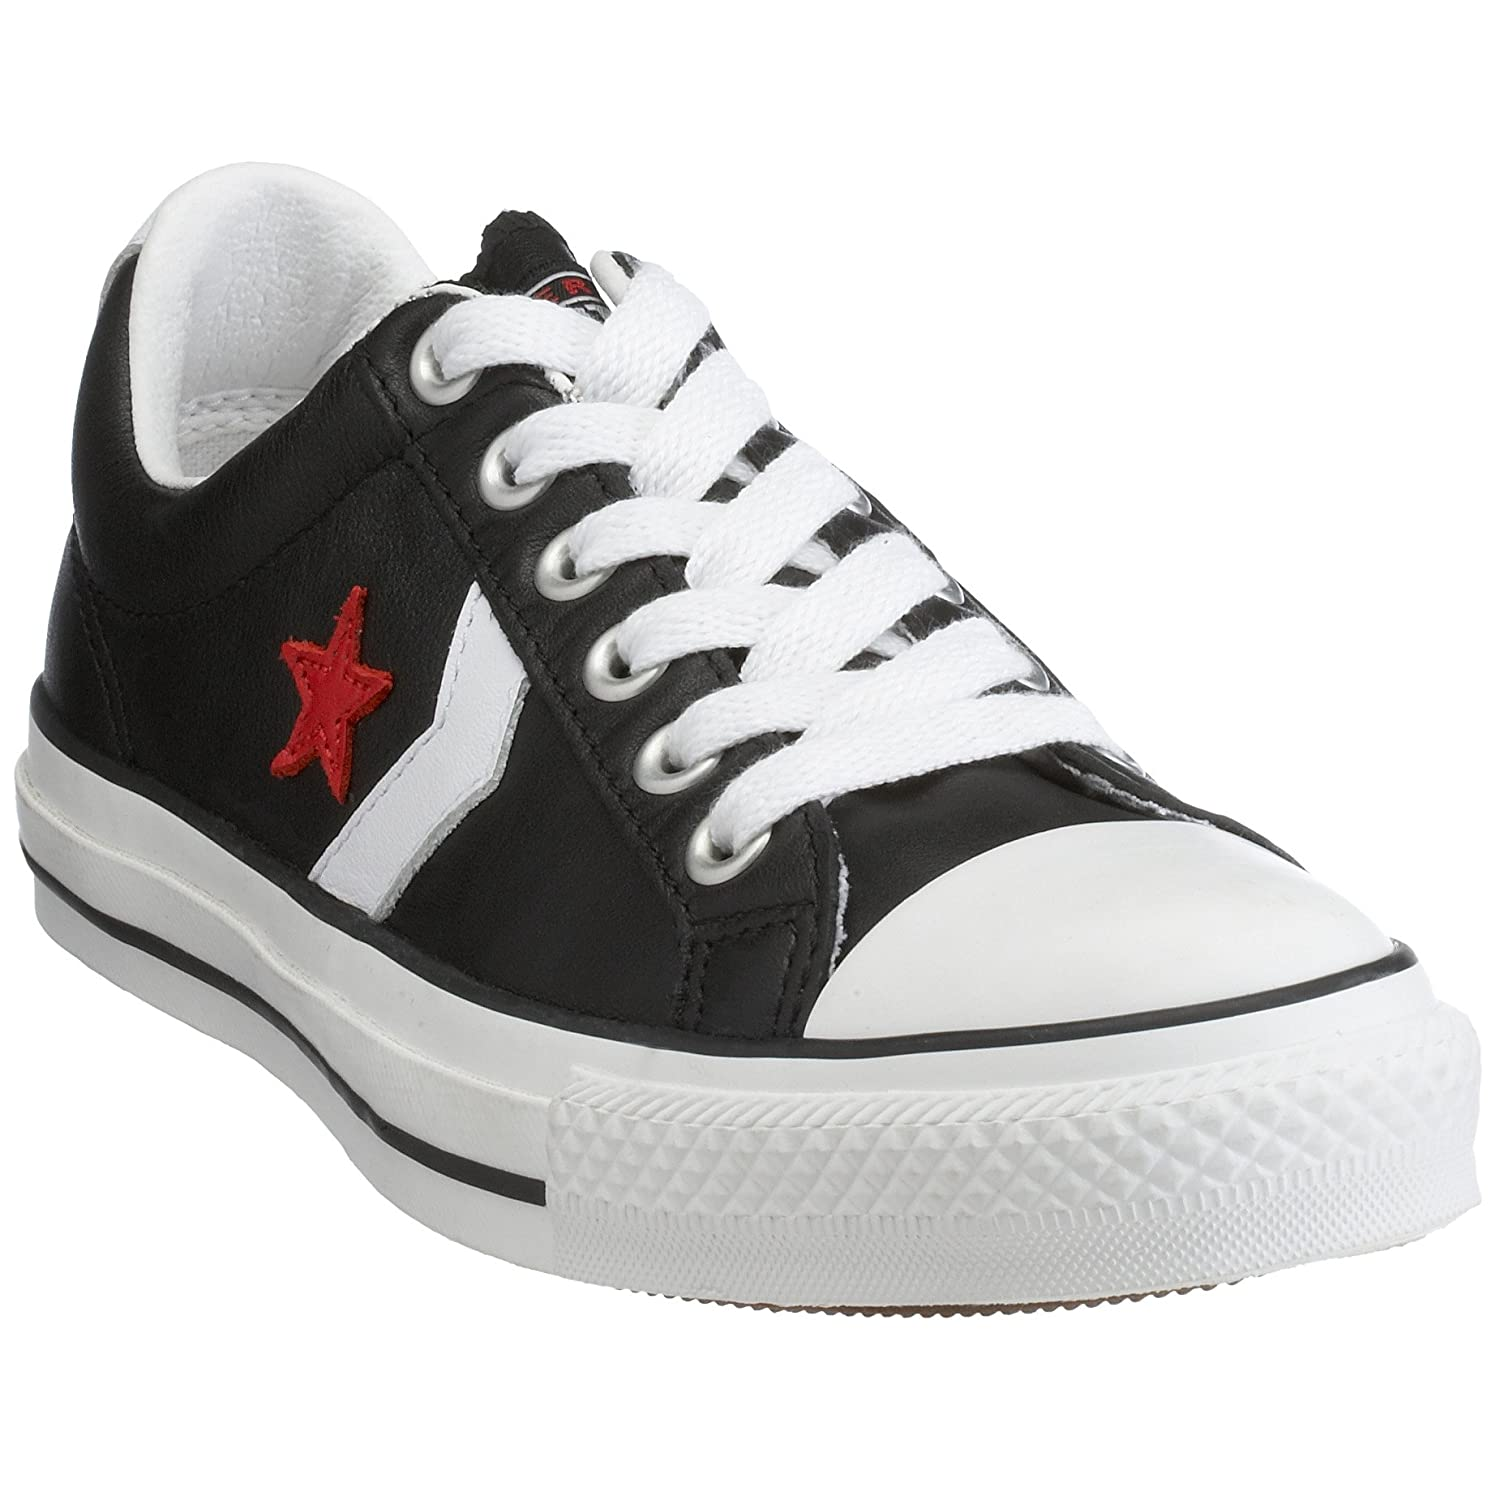 Converse Leather zapatillas Unisex adulto